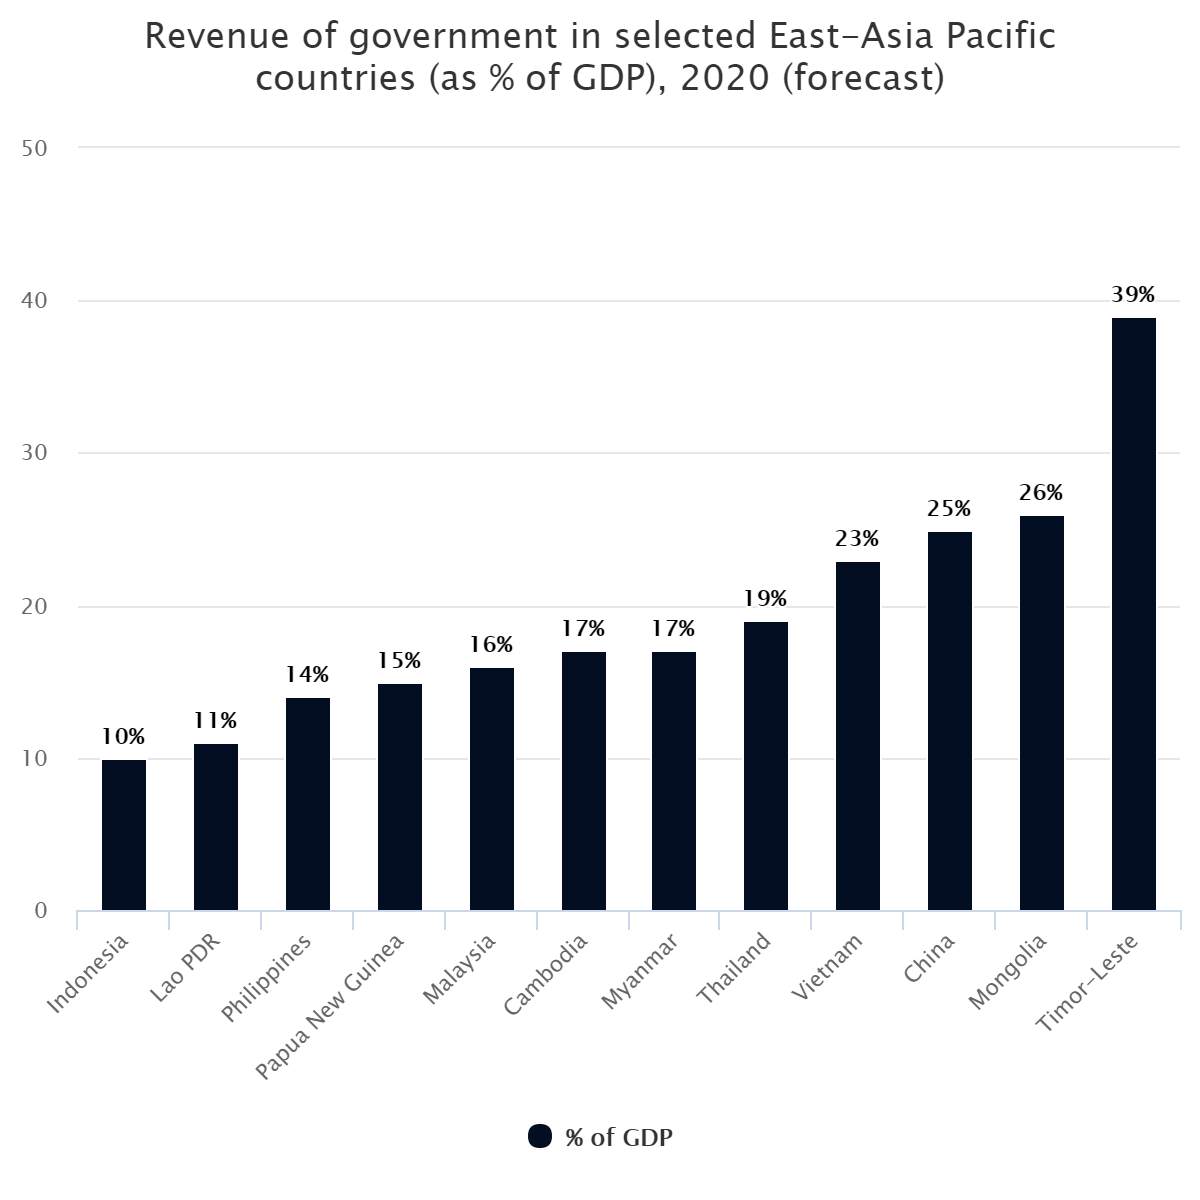 Revenue of government in selected East-Asia Pacific countries (as % of GDP), 2020 (forecast)